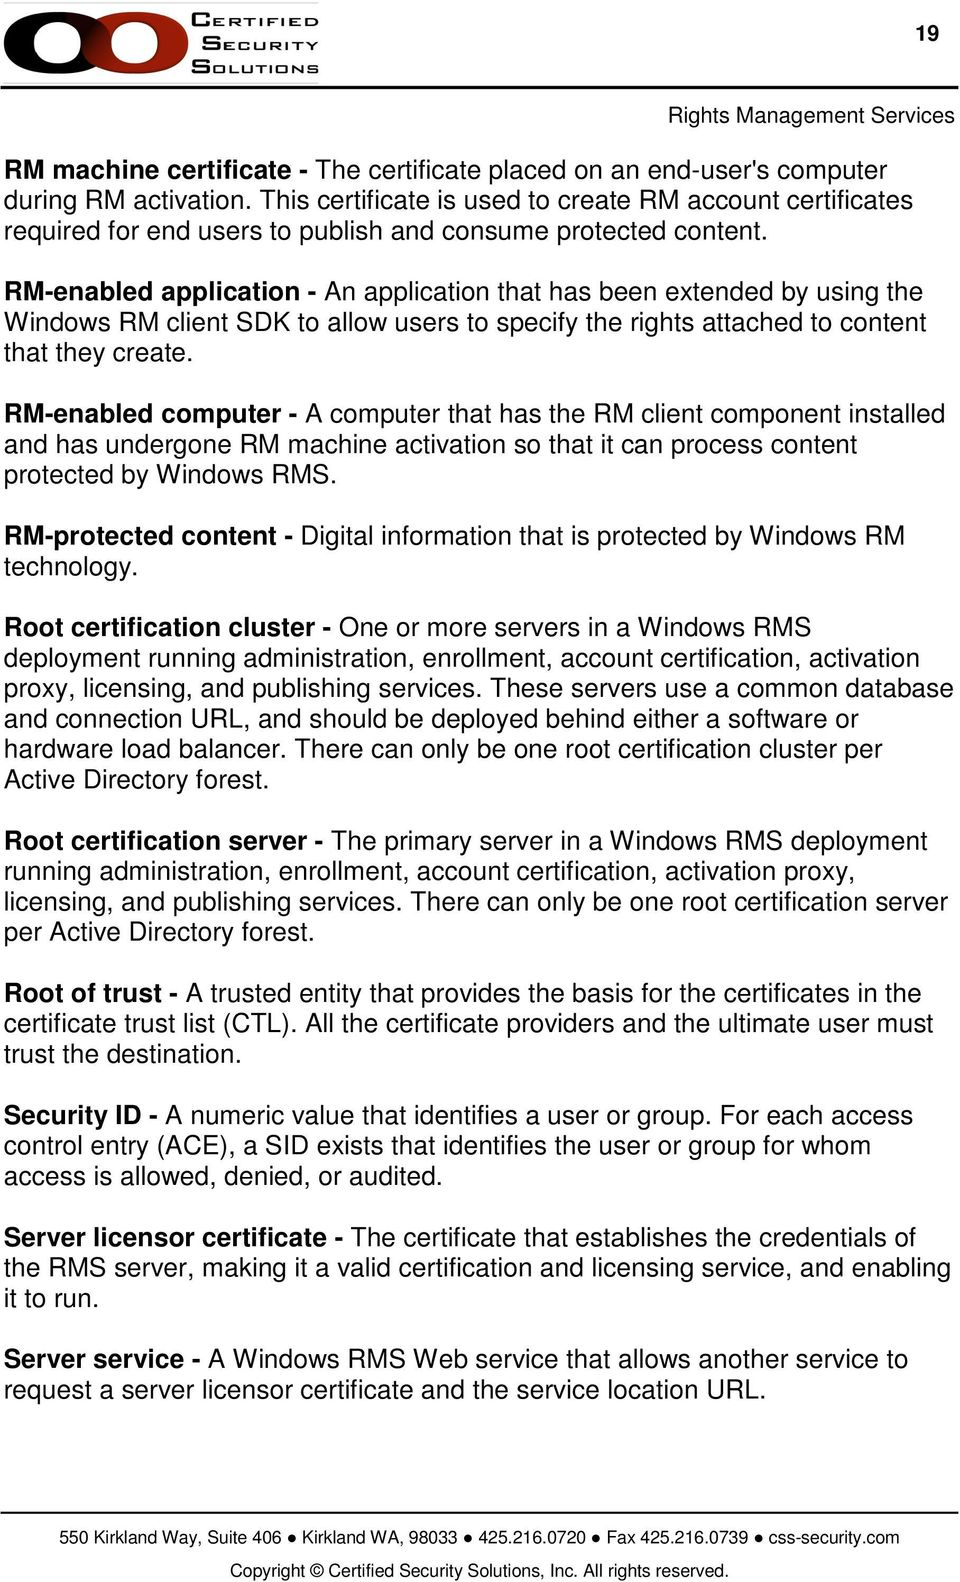 RM-enabled application - An application that has been extended by using the Windows RM client SDK to allow users to specify the rights attached to content that they create.